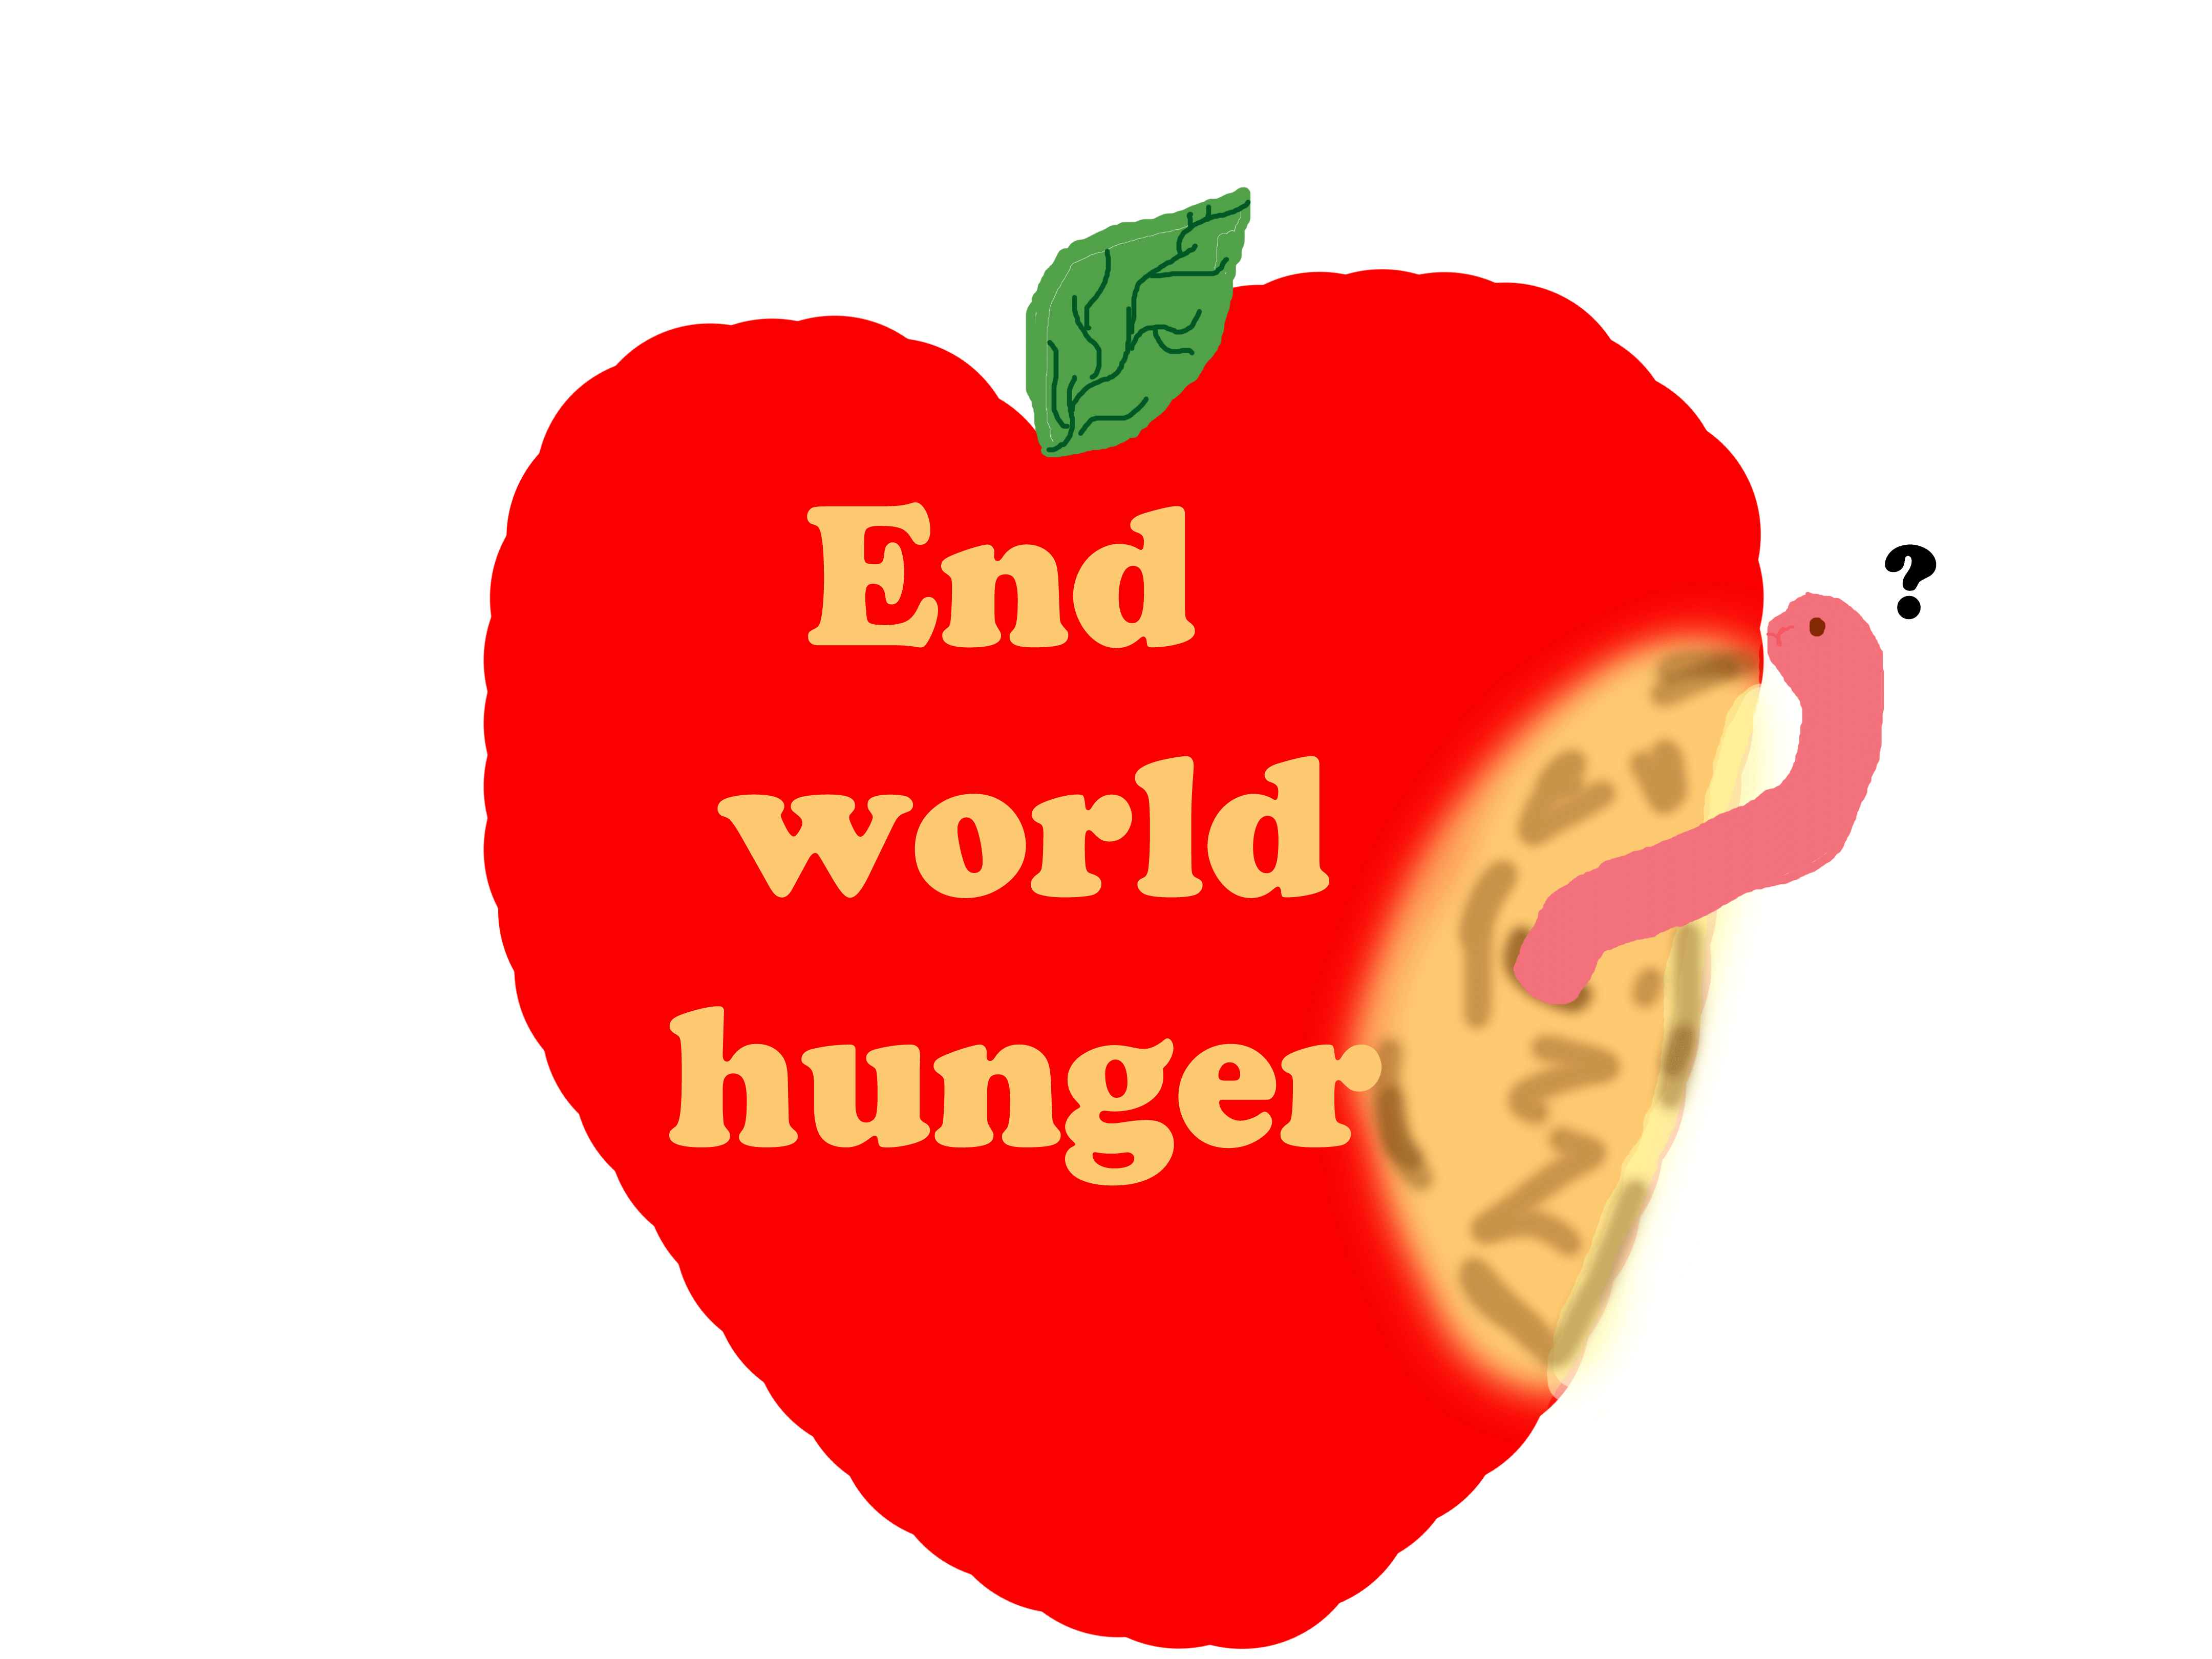 essay on ending world hunger World food program usa is leading the fight to end global hunger when disaster strikes, wfp is the first on the ground to deliver food to the people that need it most, whether last year's famine in the horn of africa to the more than 10 million people in the sahel we're working to reach now.